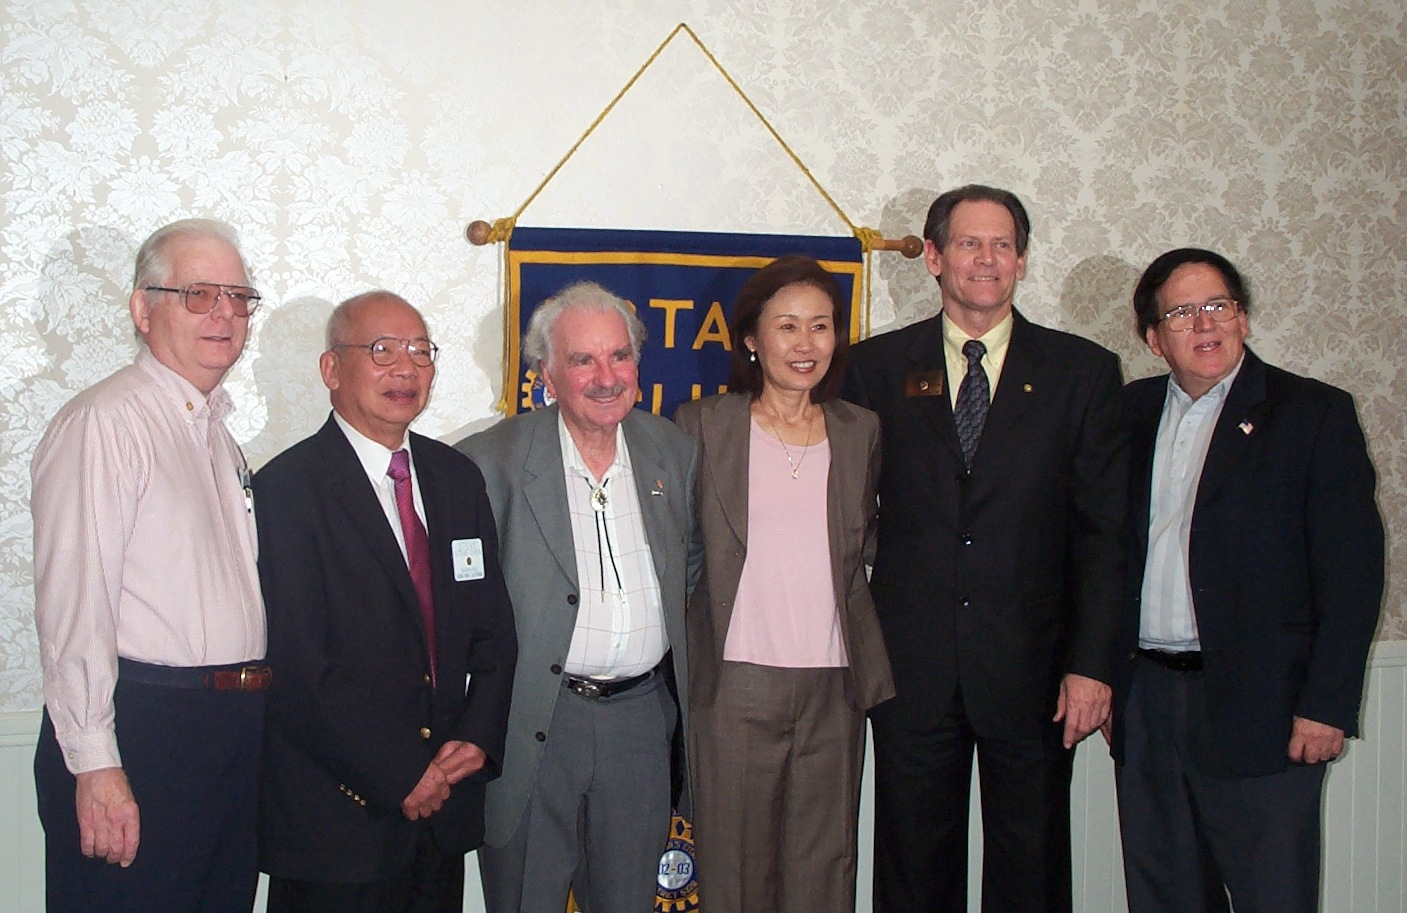 Michelle Steel at Rotary w.DS.JPG